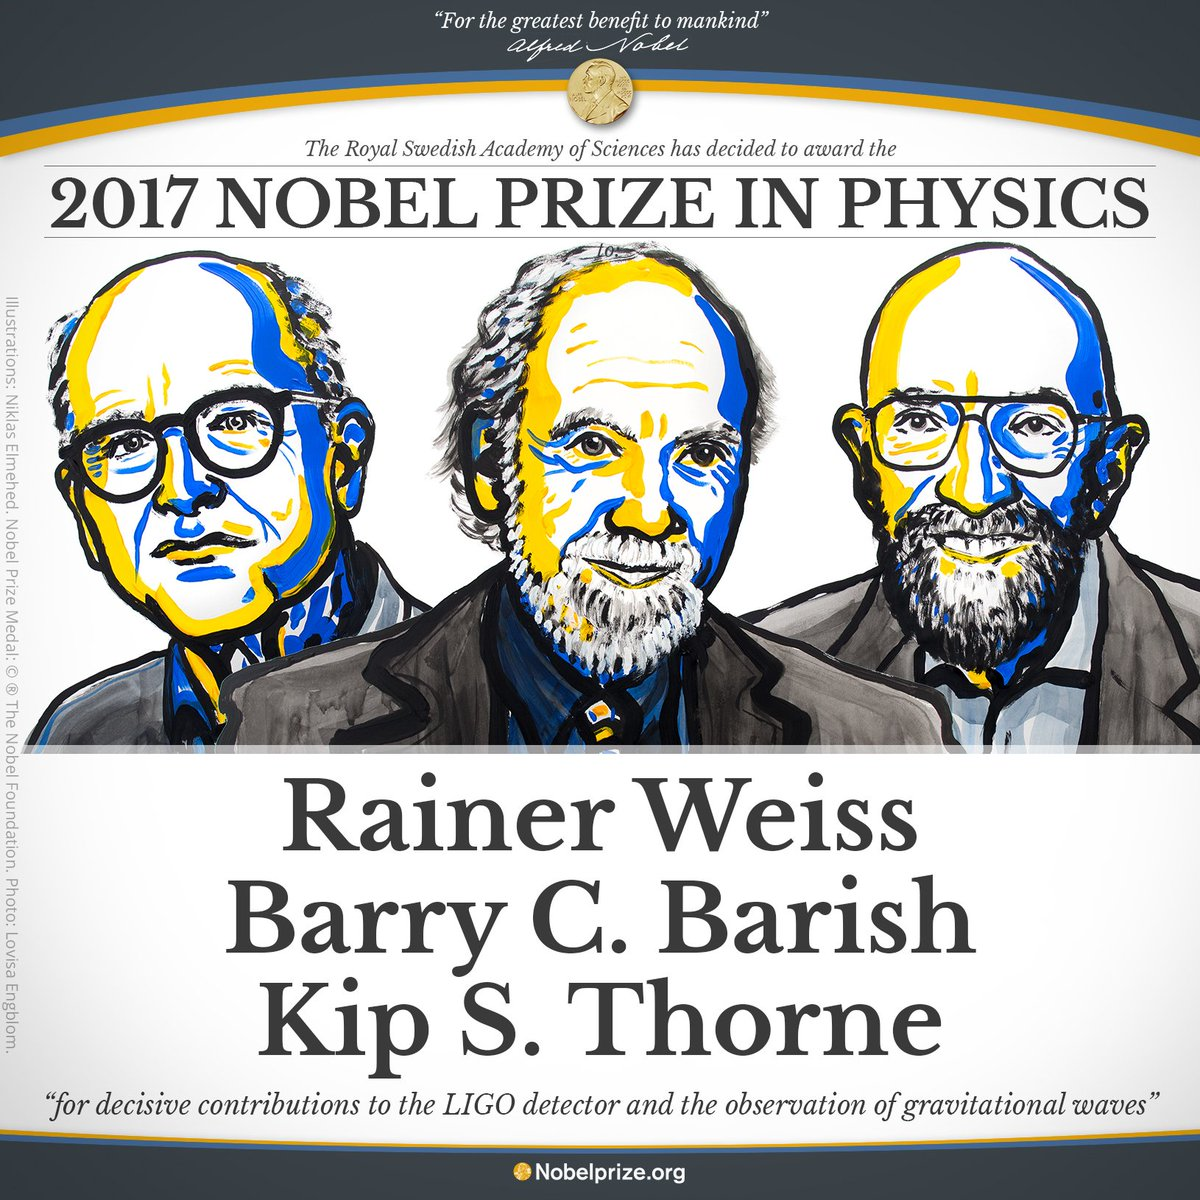 The 2017 Nobel Prize for physics goes to three scientists who proved Einstein right